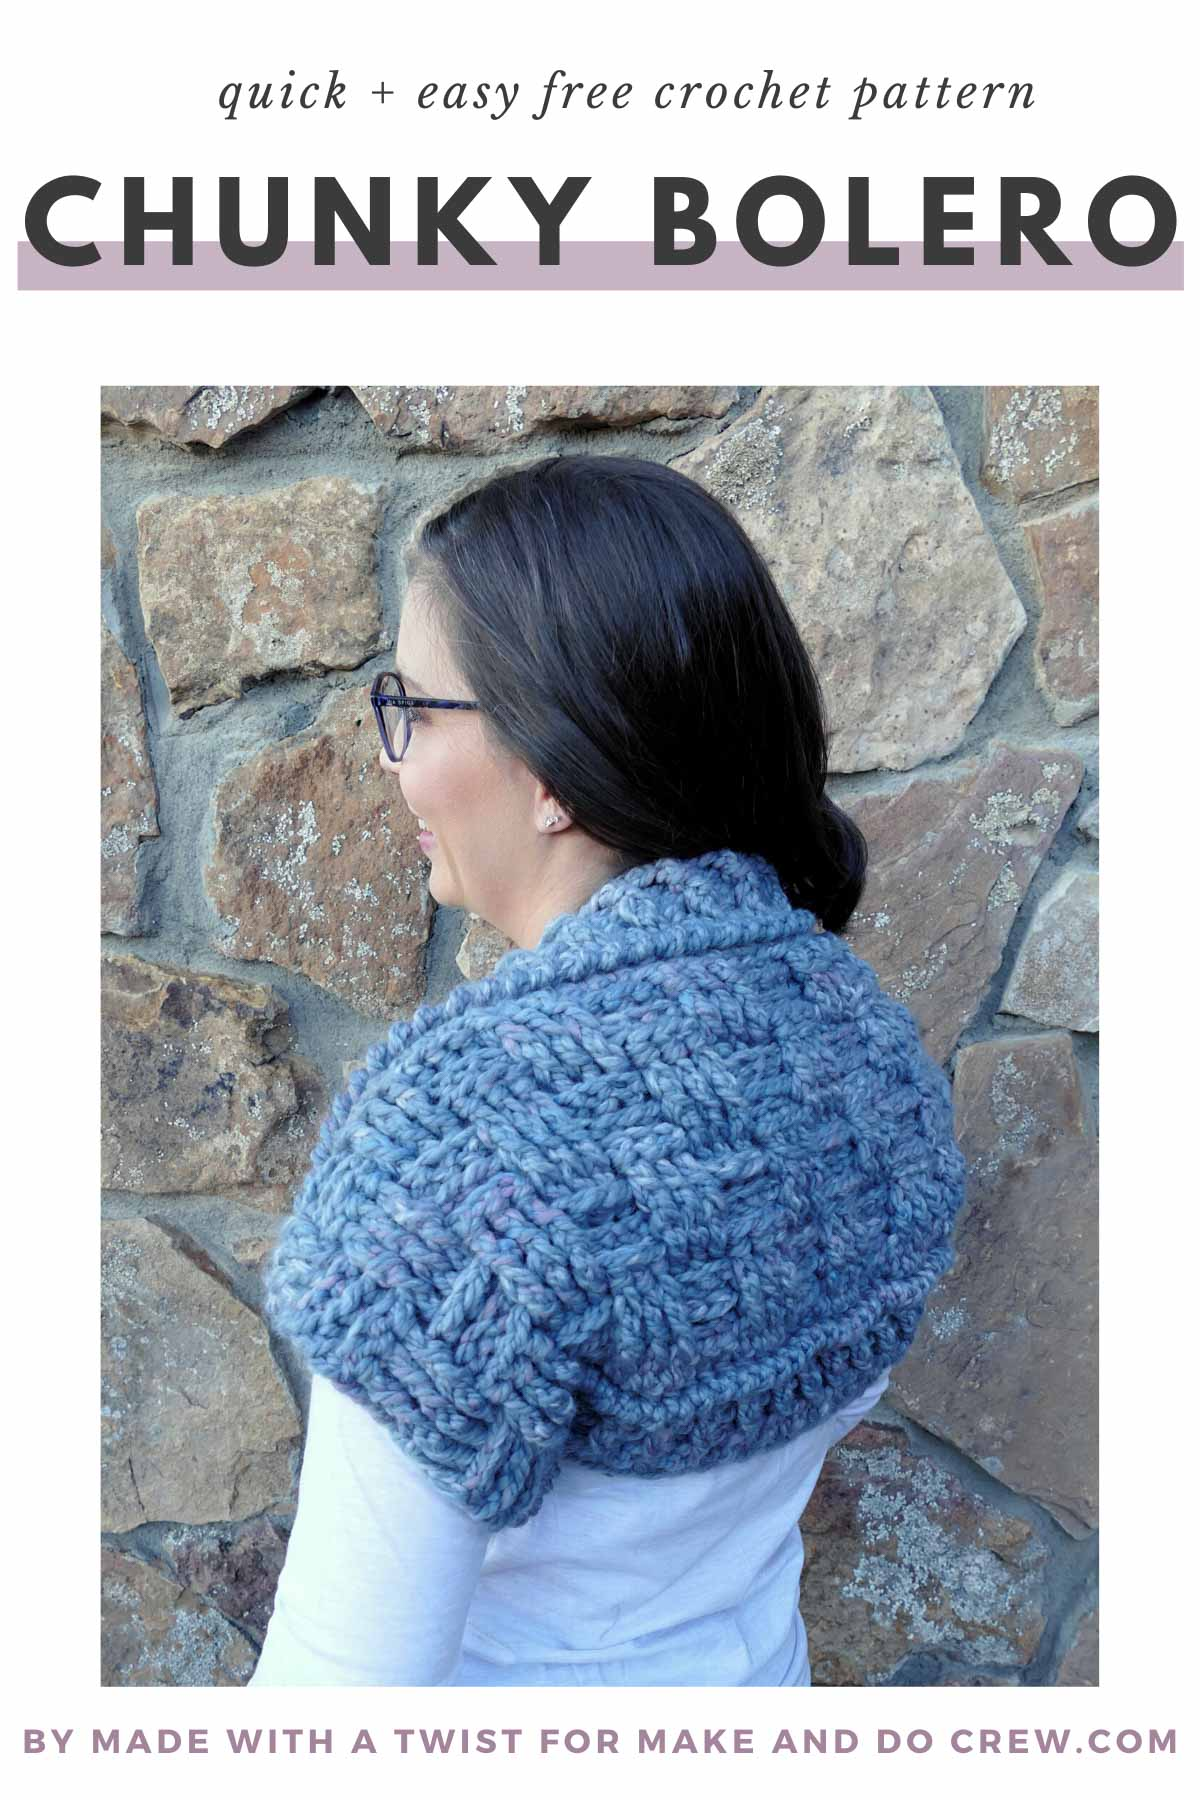 Women with long, dark hair standing in front of stone wall. She is wearing glasses and a white long sleeved-shirt. Over the white shirt, she is wearing a chunky crochet shug, made using Lion Brand yarn.